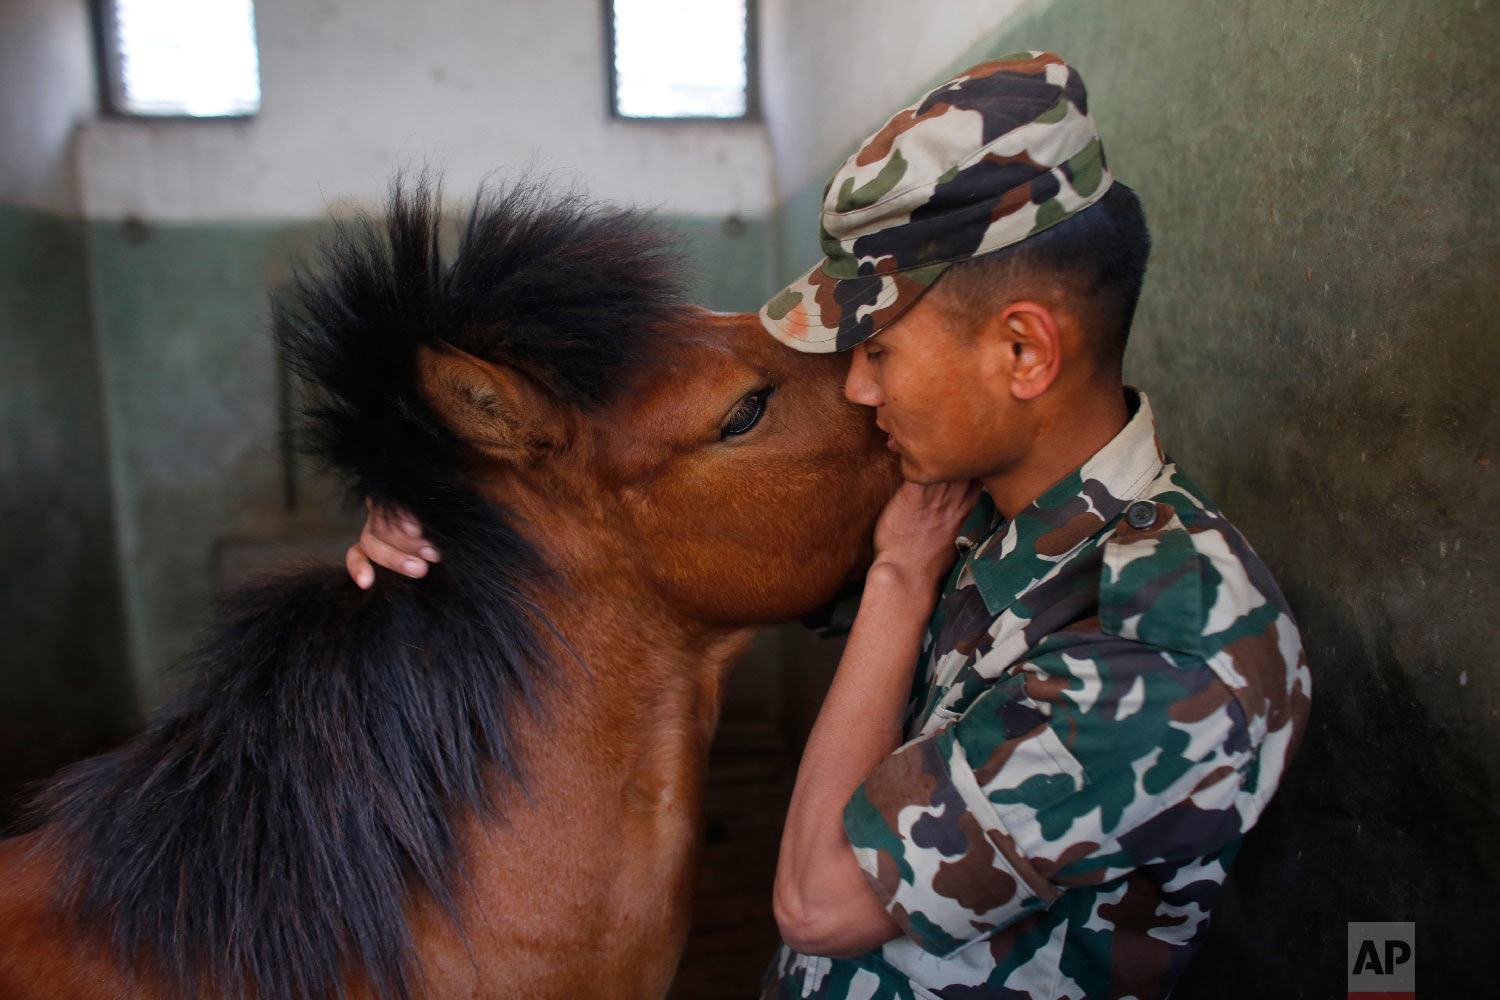 A Nepalese army soldier bonds with a horse at the Nepal Cavalry stable before the Ghode Jatra festival on April 3, 2019, in Kathmandu, Nepal. (AP Photo/Niranjan Shrestha)